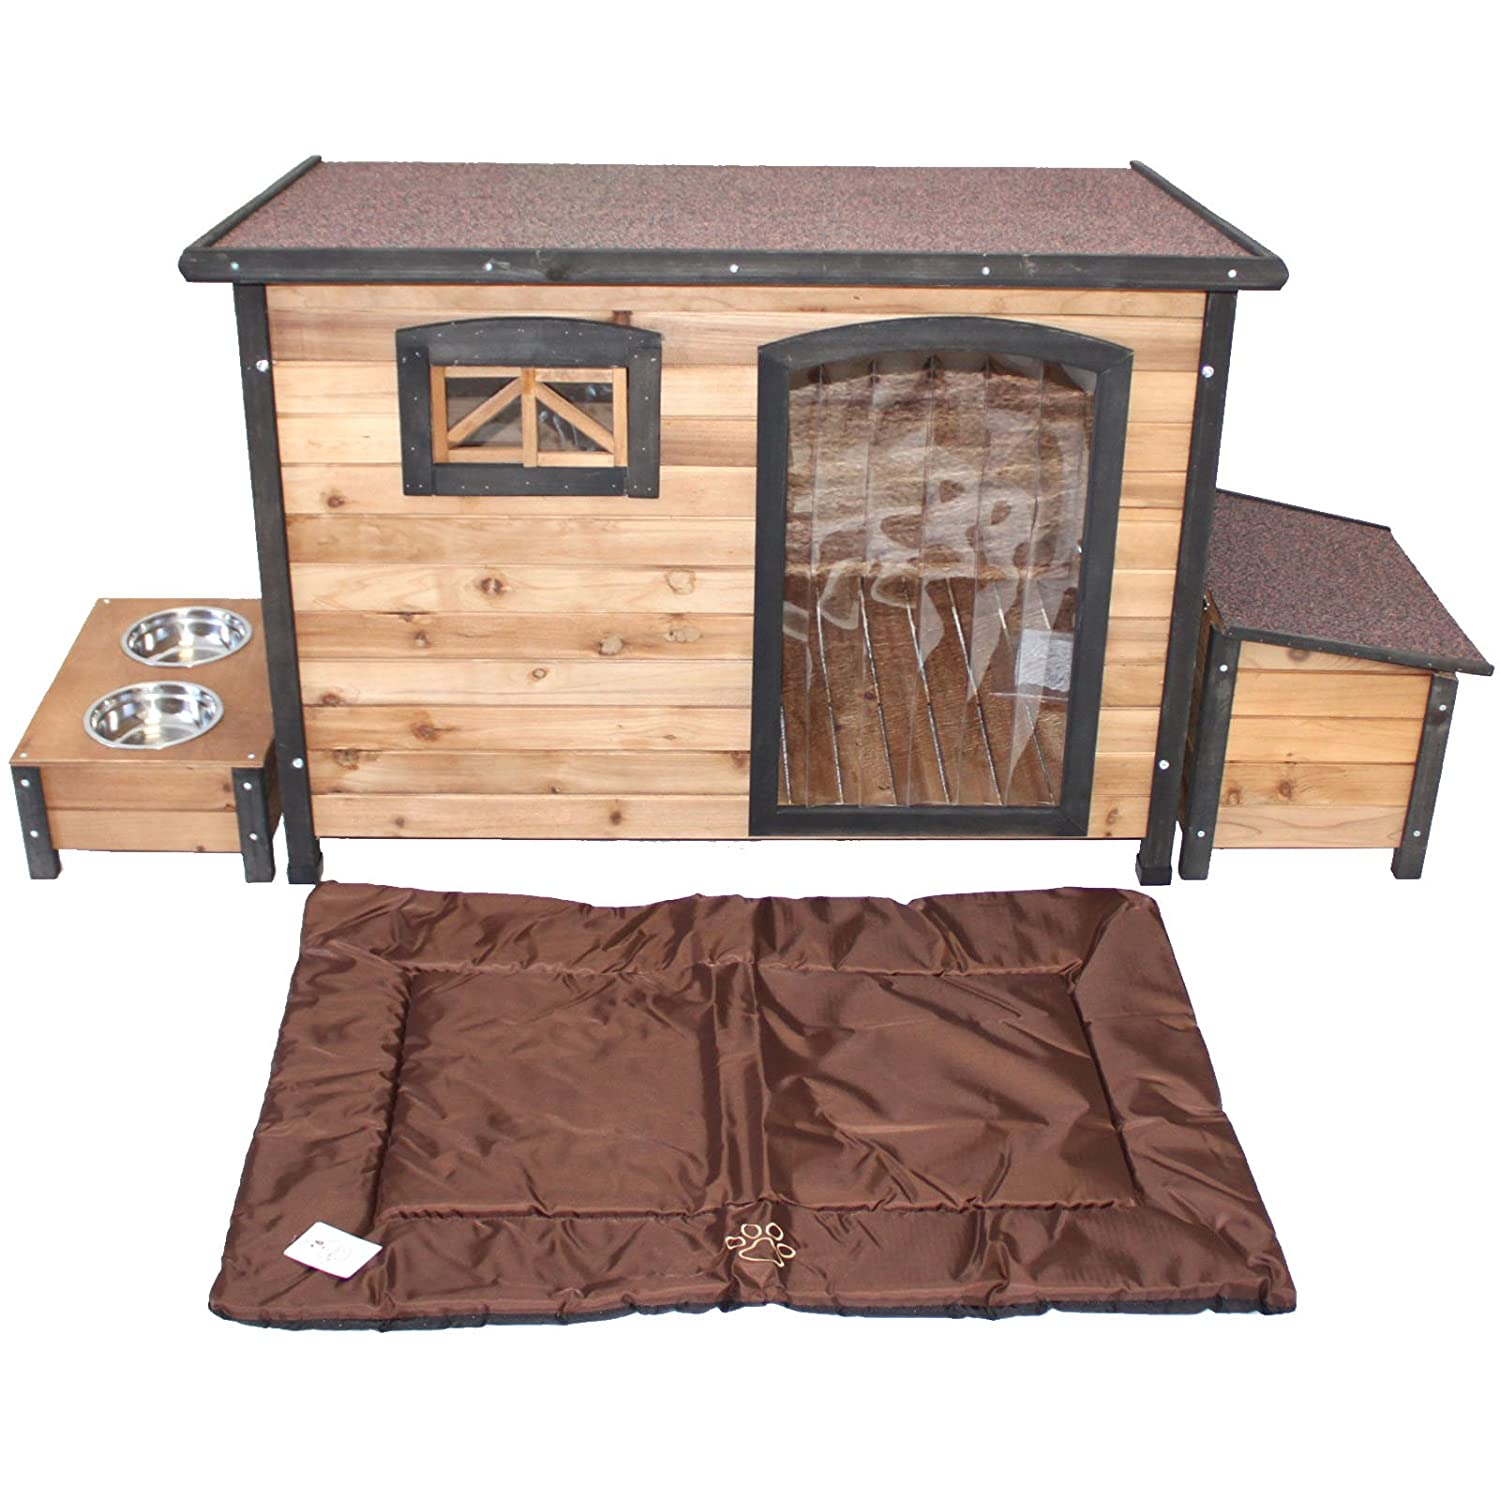 PETJOINT Large Wooden Dog House + Storage Box + Food Bowls + Waterproof Mattress   Wood Pet Puppy Kennel Timber Home Indoor Outdoor